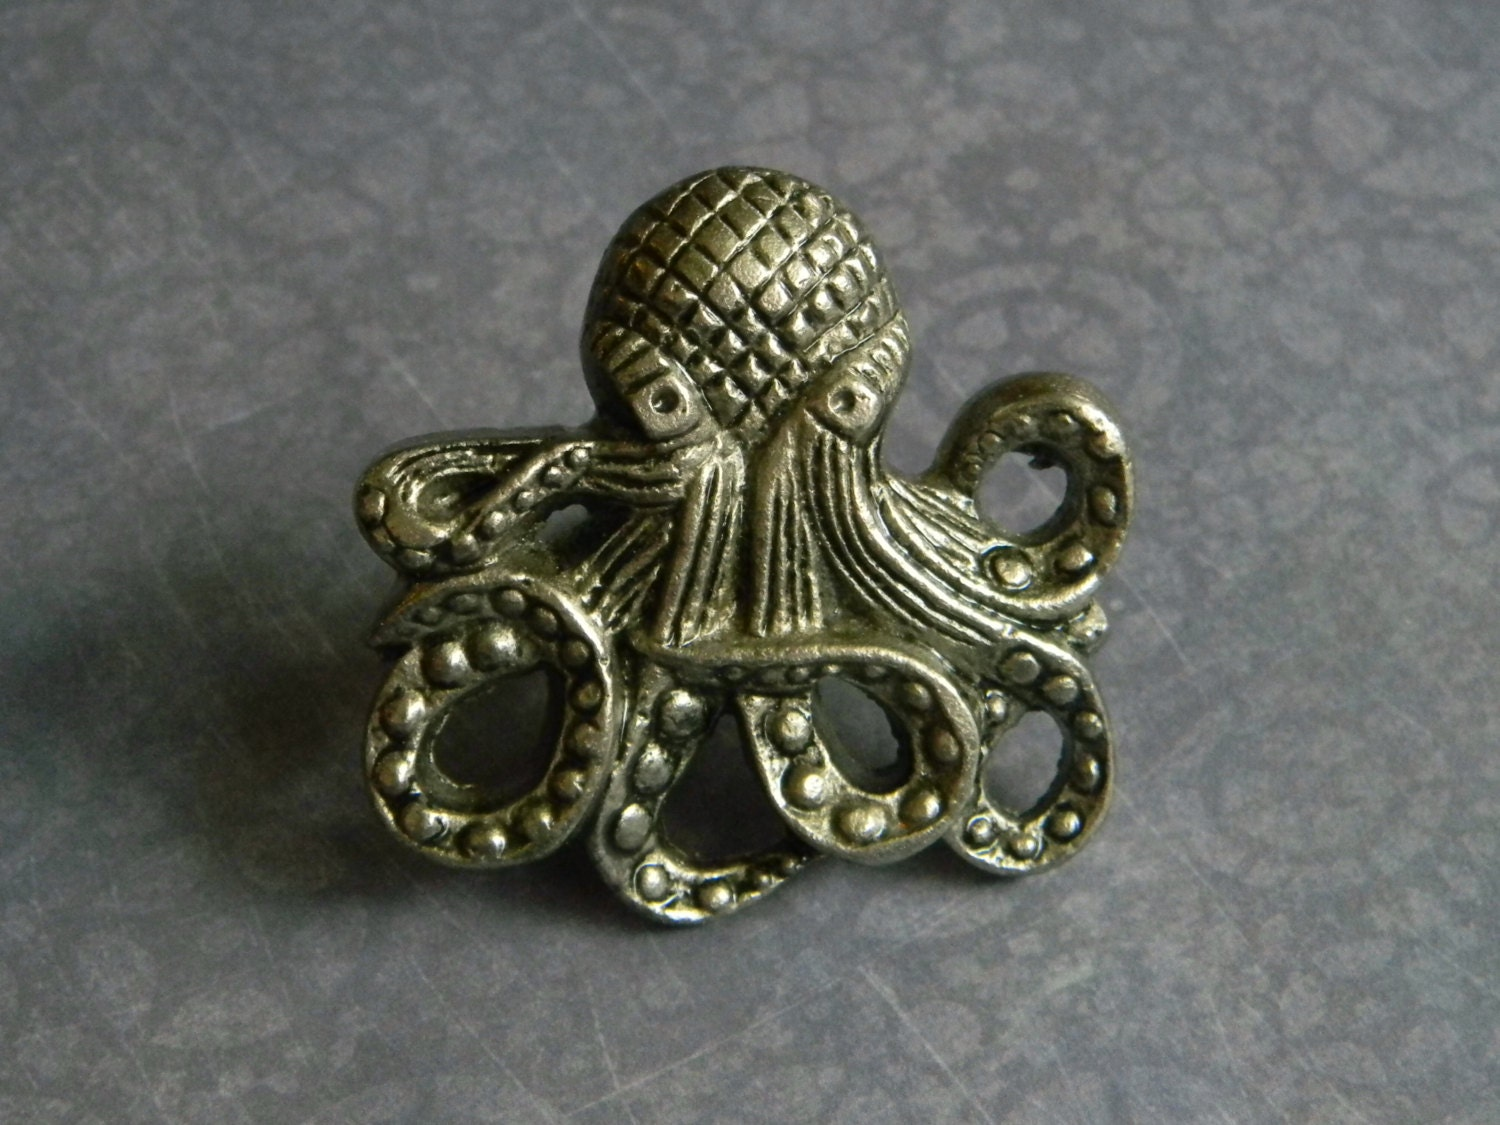 Cast Iron Octopus Knob   Kraken Door Knob   Cast Octopus Cabinet Knob Or  Drawer Knob For Bureau   Nautical Style Knob